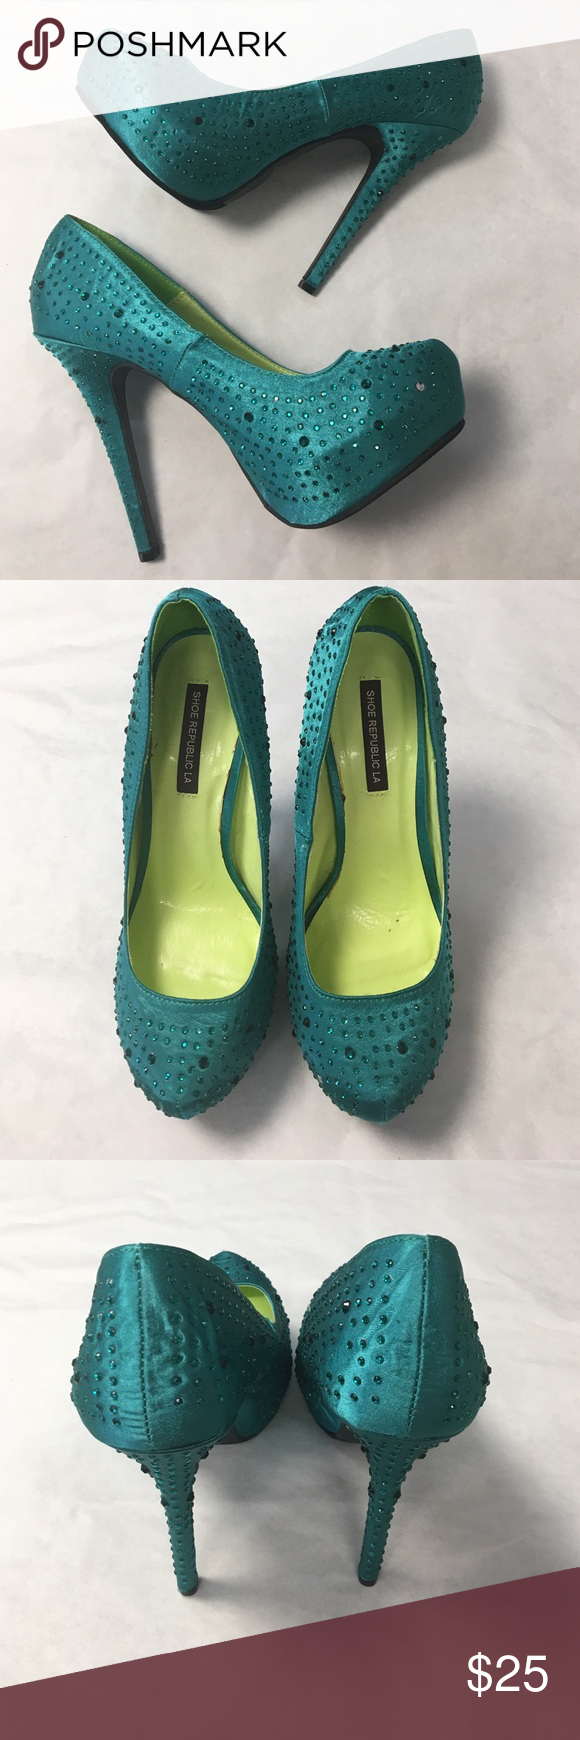 Gorgeous satin Pumps with rhinestones sea green These satin Pumps are absolutely beautiful. Smooth sea green satin upper with sparkly rhinestones. Shoe Republic LA brand. Unworn...just tried on. These are too big for me . Size 9. I was hoping they ran small to fit my size 8 foot. No luck. Someone will love these & actually be able to fit them. There is only 1 rhinestone missing and it's not notice while wearing IMO. See 1st pic. Can be colored w/ a marker if desired. shoe republic L.A  Shoes…